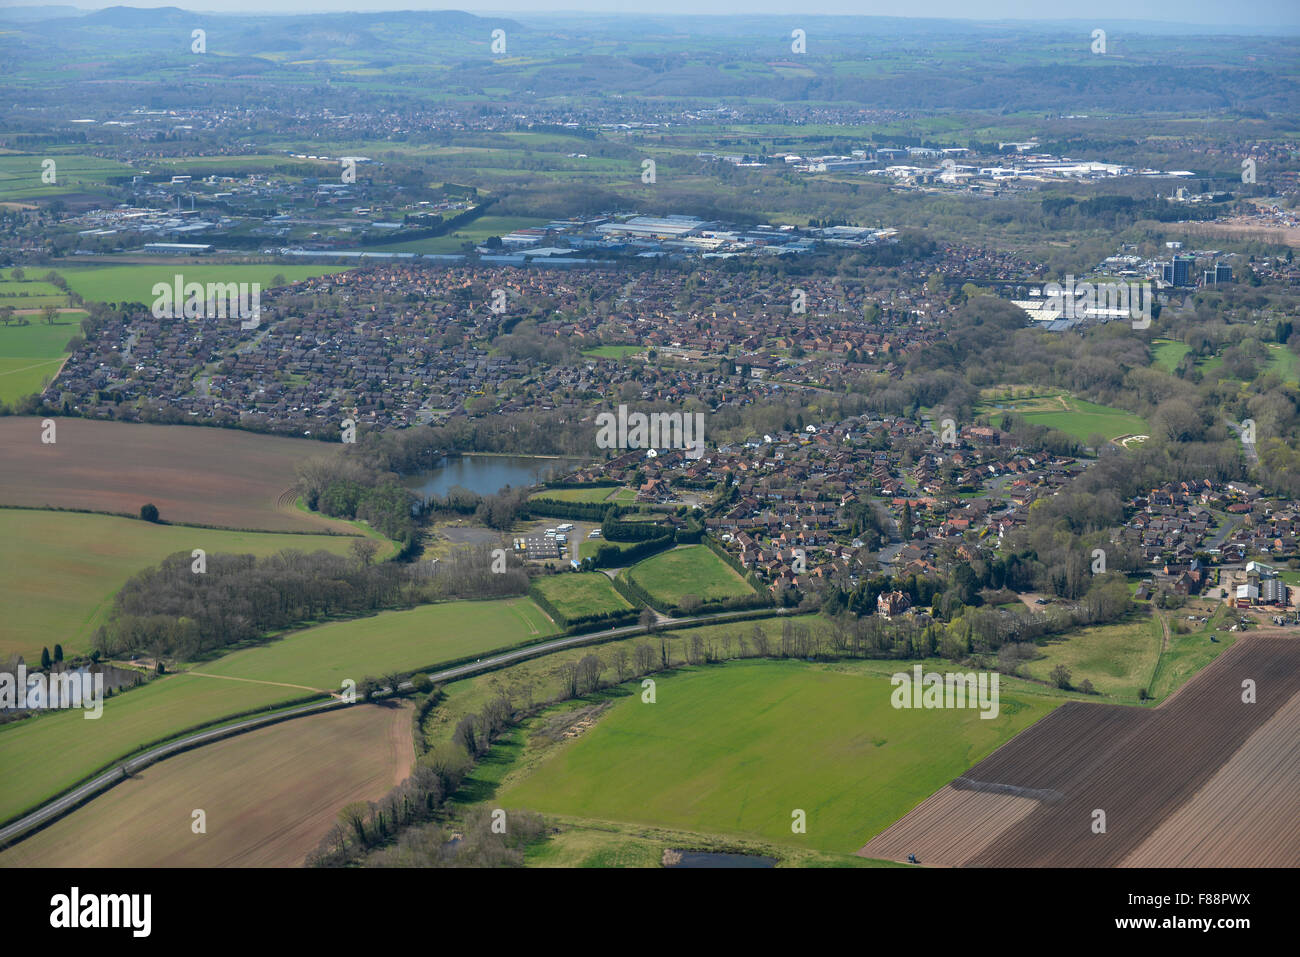 An aerial view of the Spennells area of Kidderminster - Stock Image